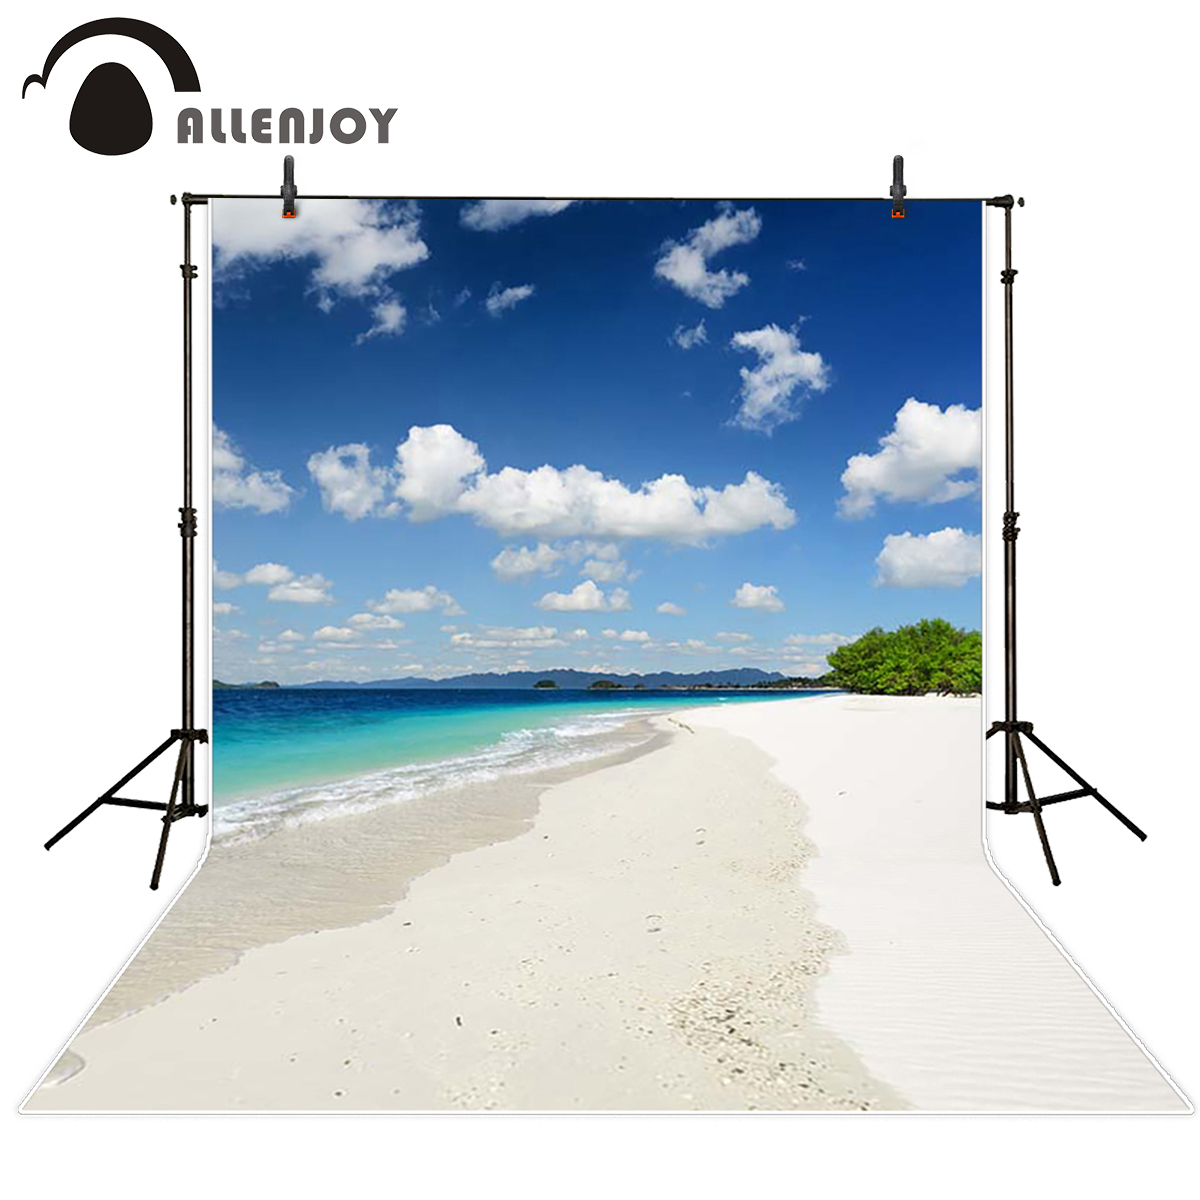 Allenjoy seaside Photo background Island white sand beach sea tree sky mountain photography backdrops vinyl photographic